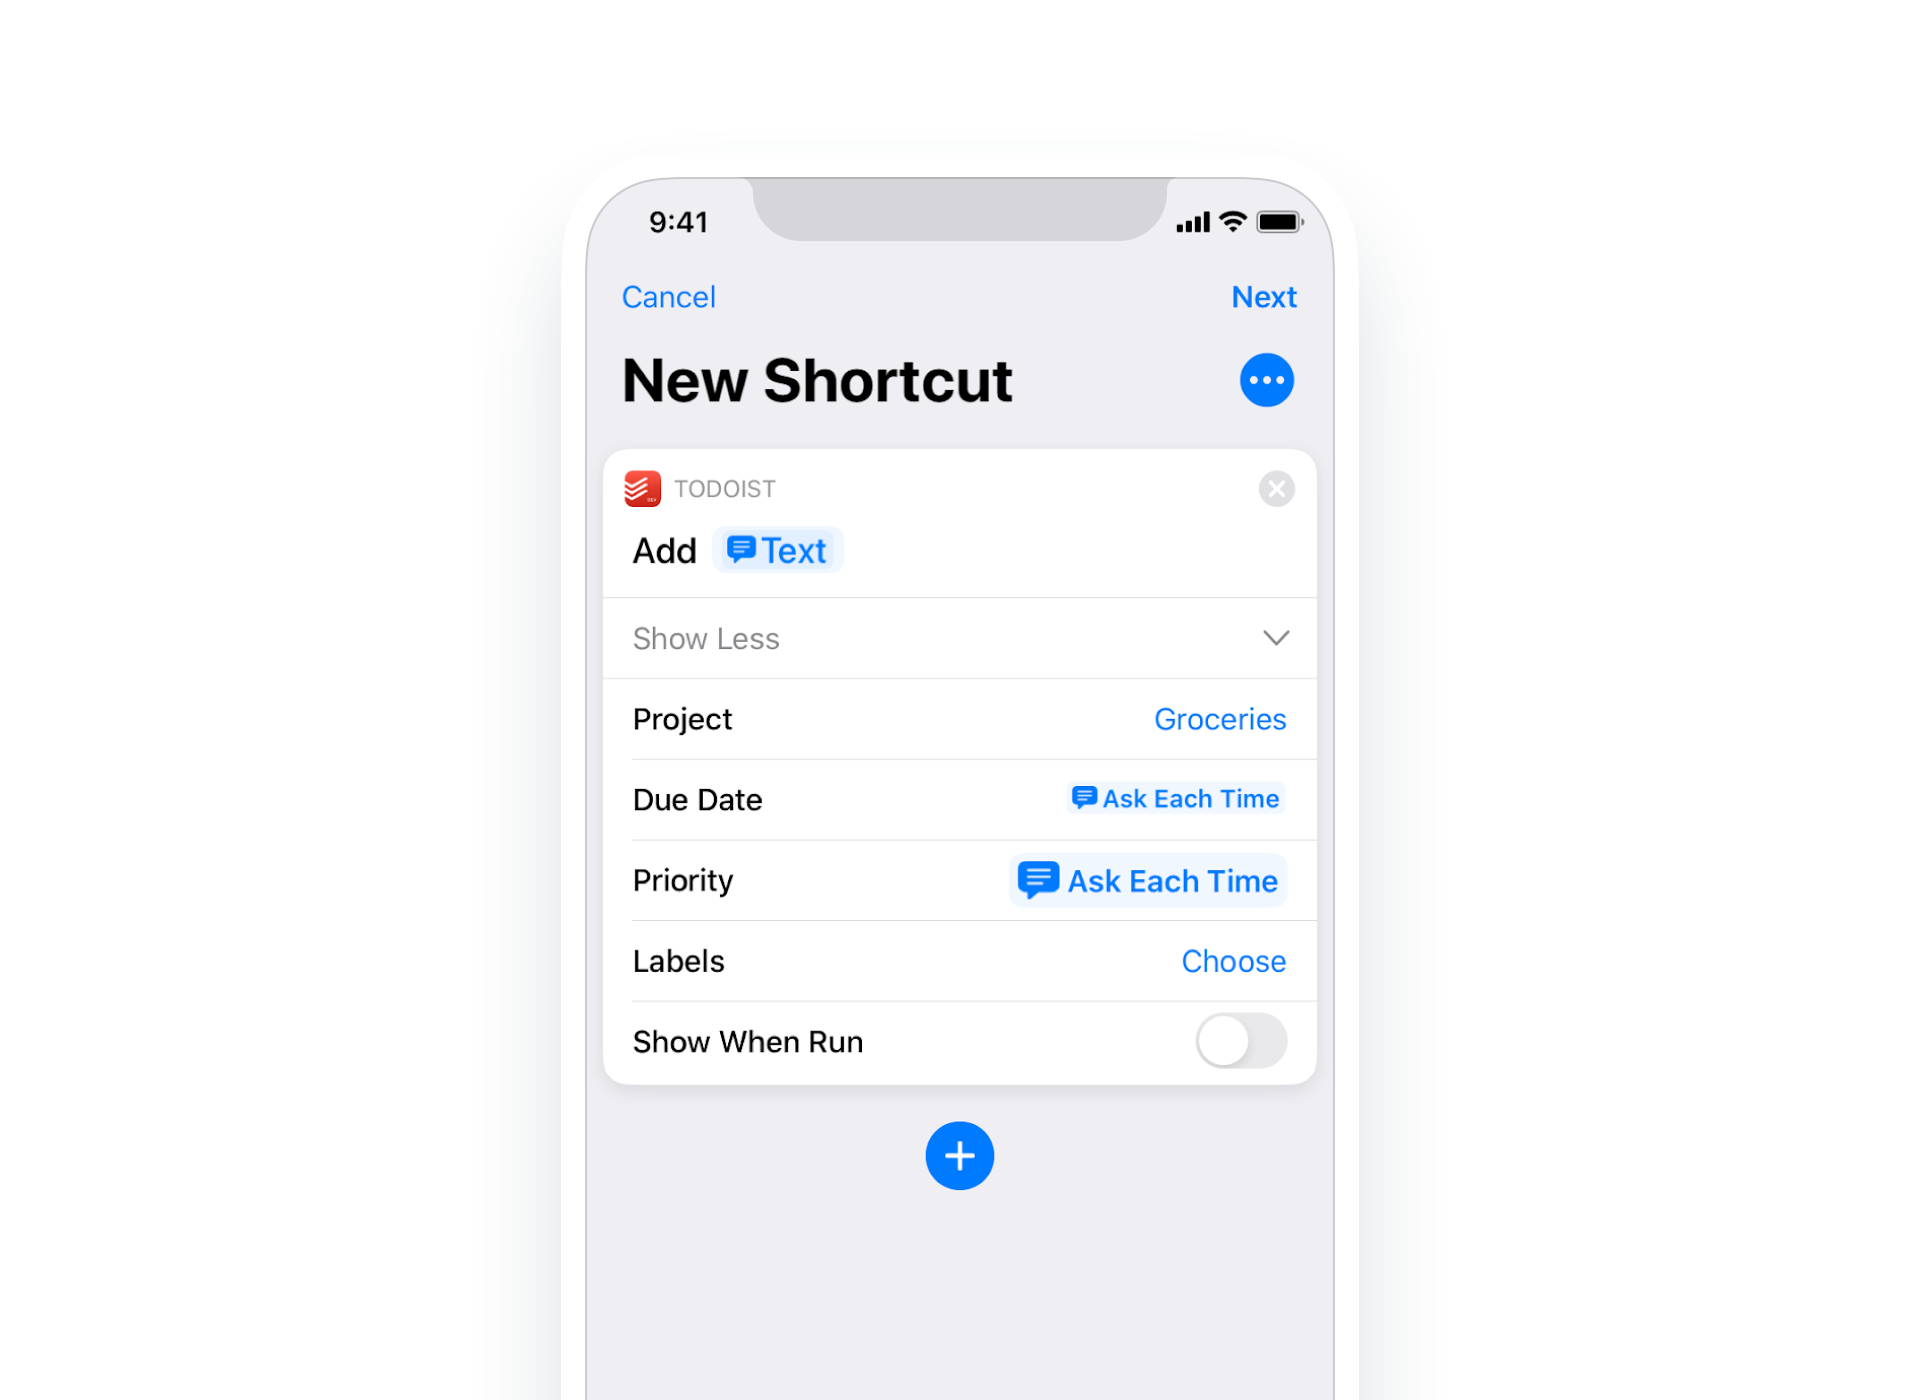 Shortcuts_on_iOS_-_iPhone_XR.png